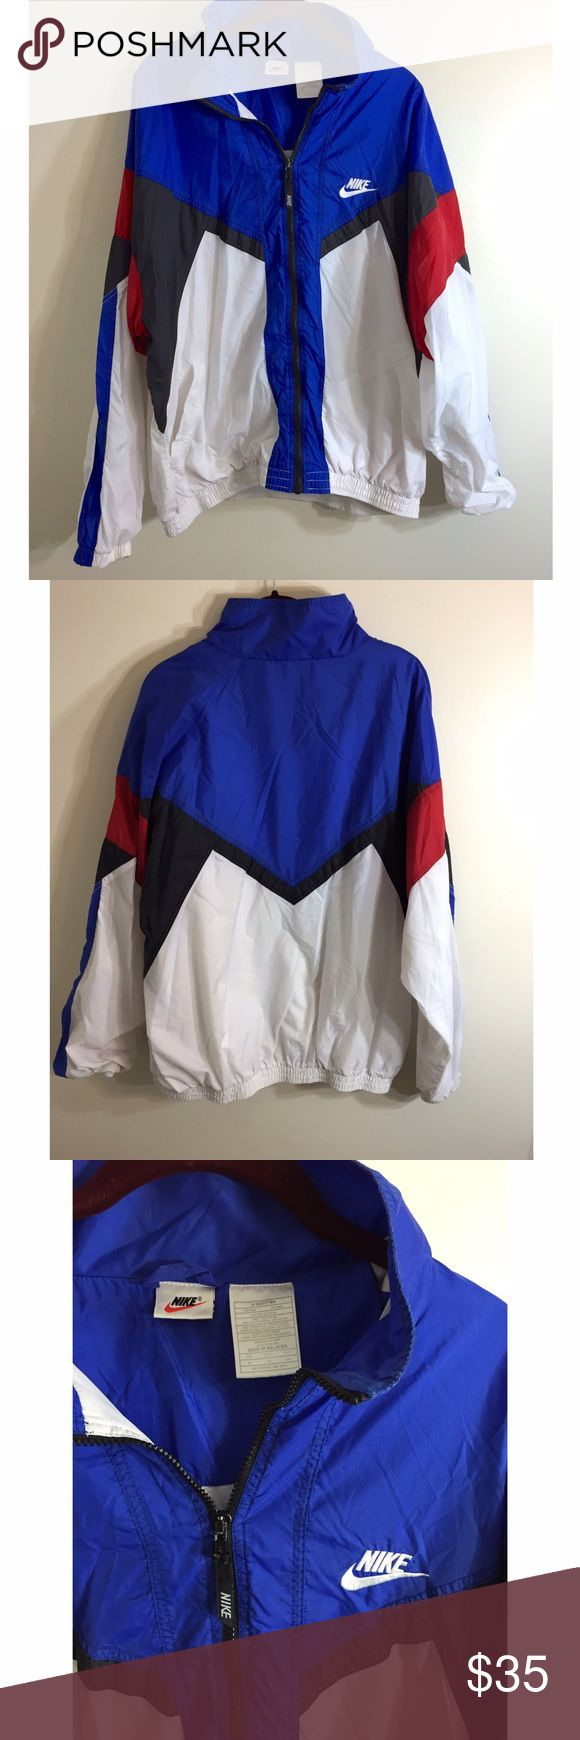 Vintage Nike Windbreaker Men's Size XL. This jacket is in excellent condition. There is very minor wear as seen in last pic. (Very light yellowing on the back but hardly noticeable!) Awesome jacket! Nike Jackets & Coats Windbreakers